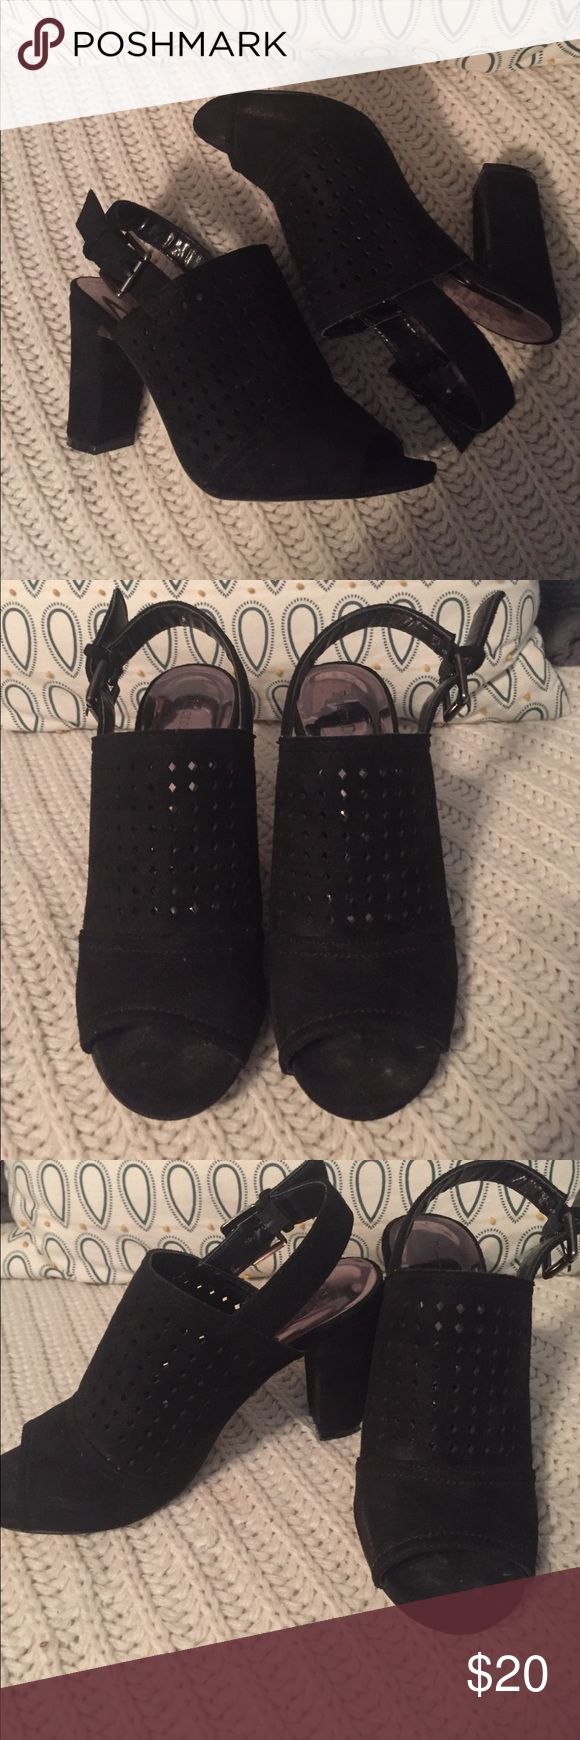 Black heels bought from Bella Bella Cute black heels bought from Bella Bella. Have been worn few times & are still in good condition. Comment below for more details. Shoes Heels